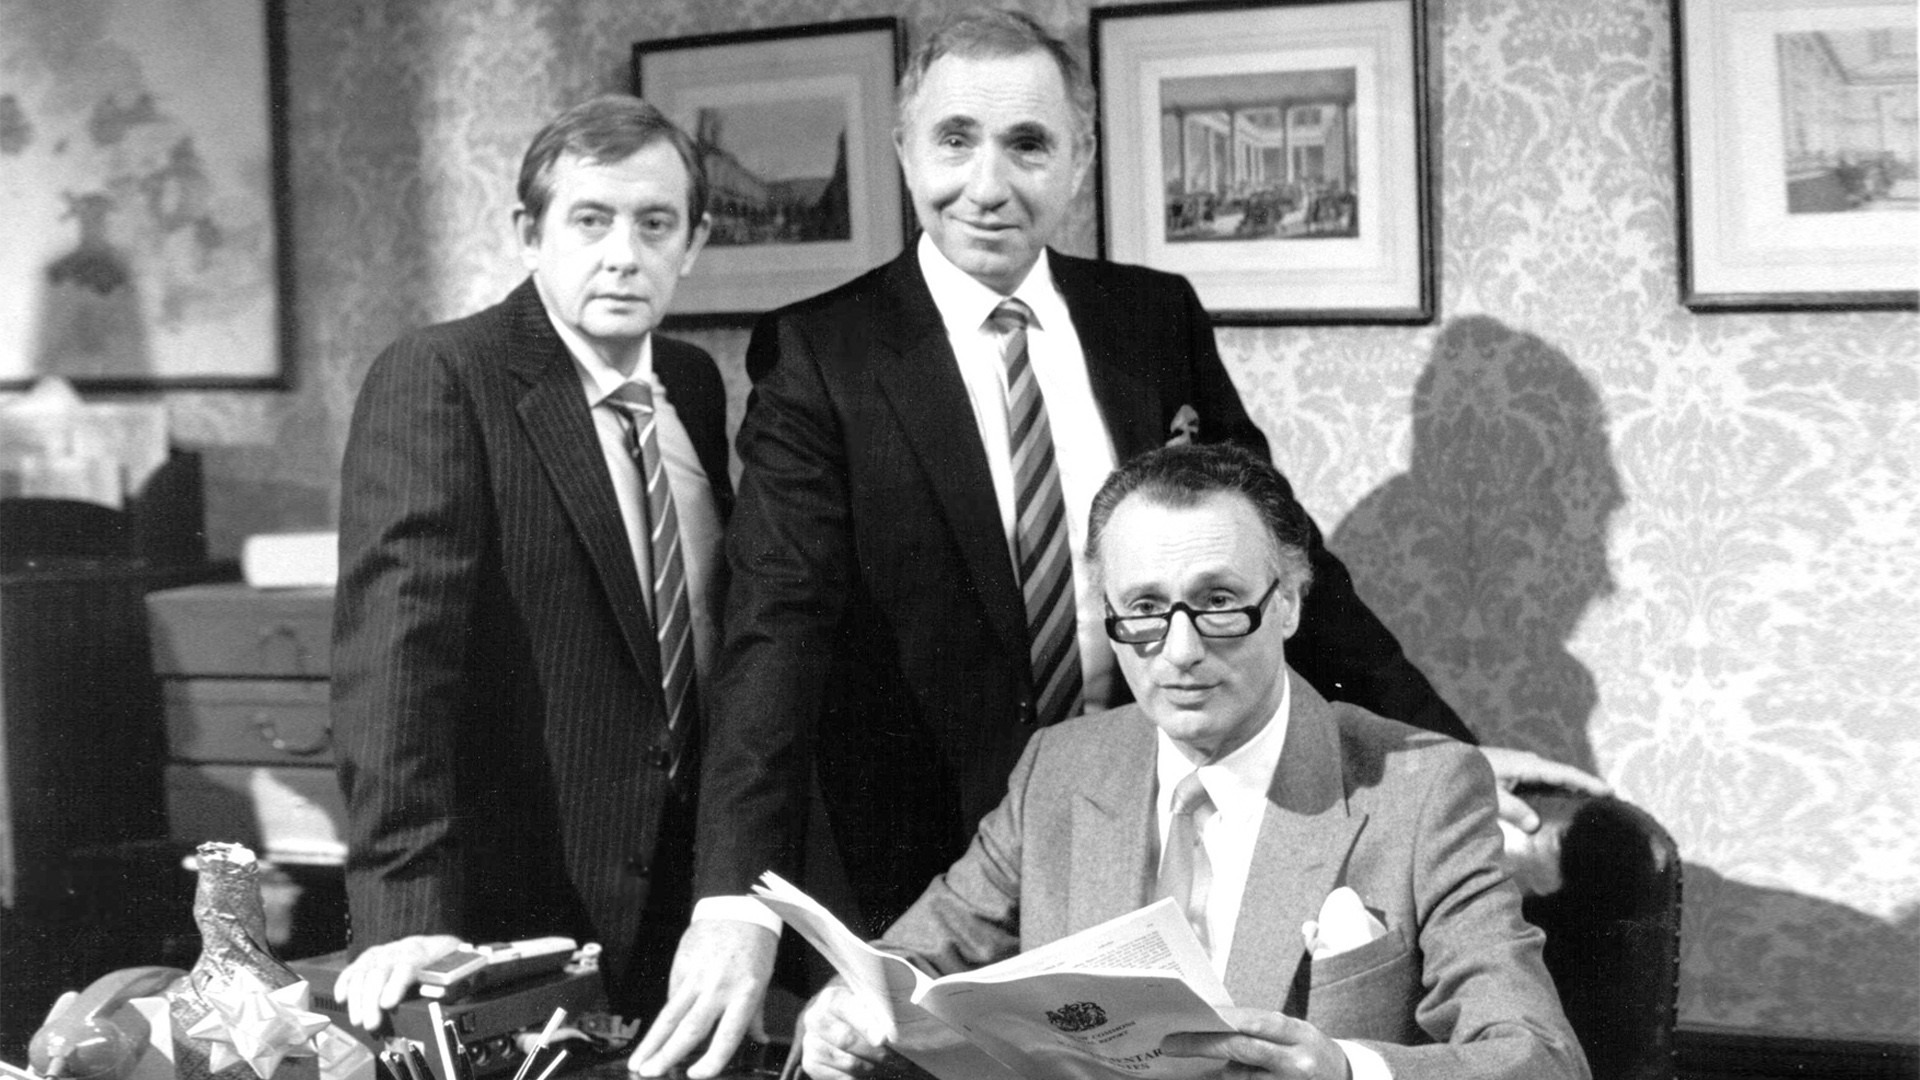 Show Yes Minister